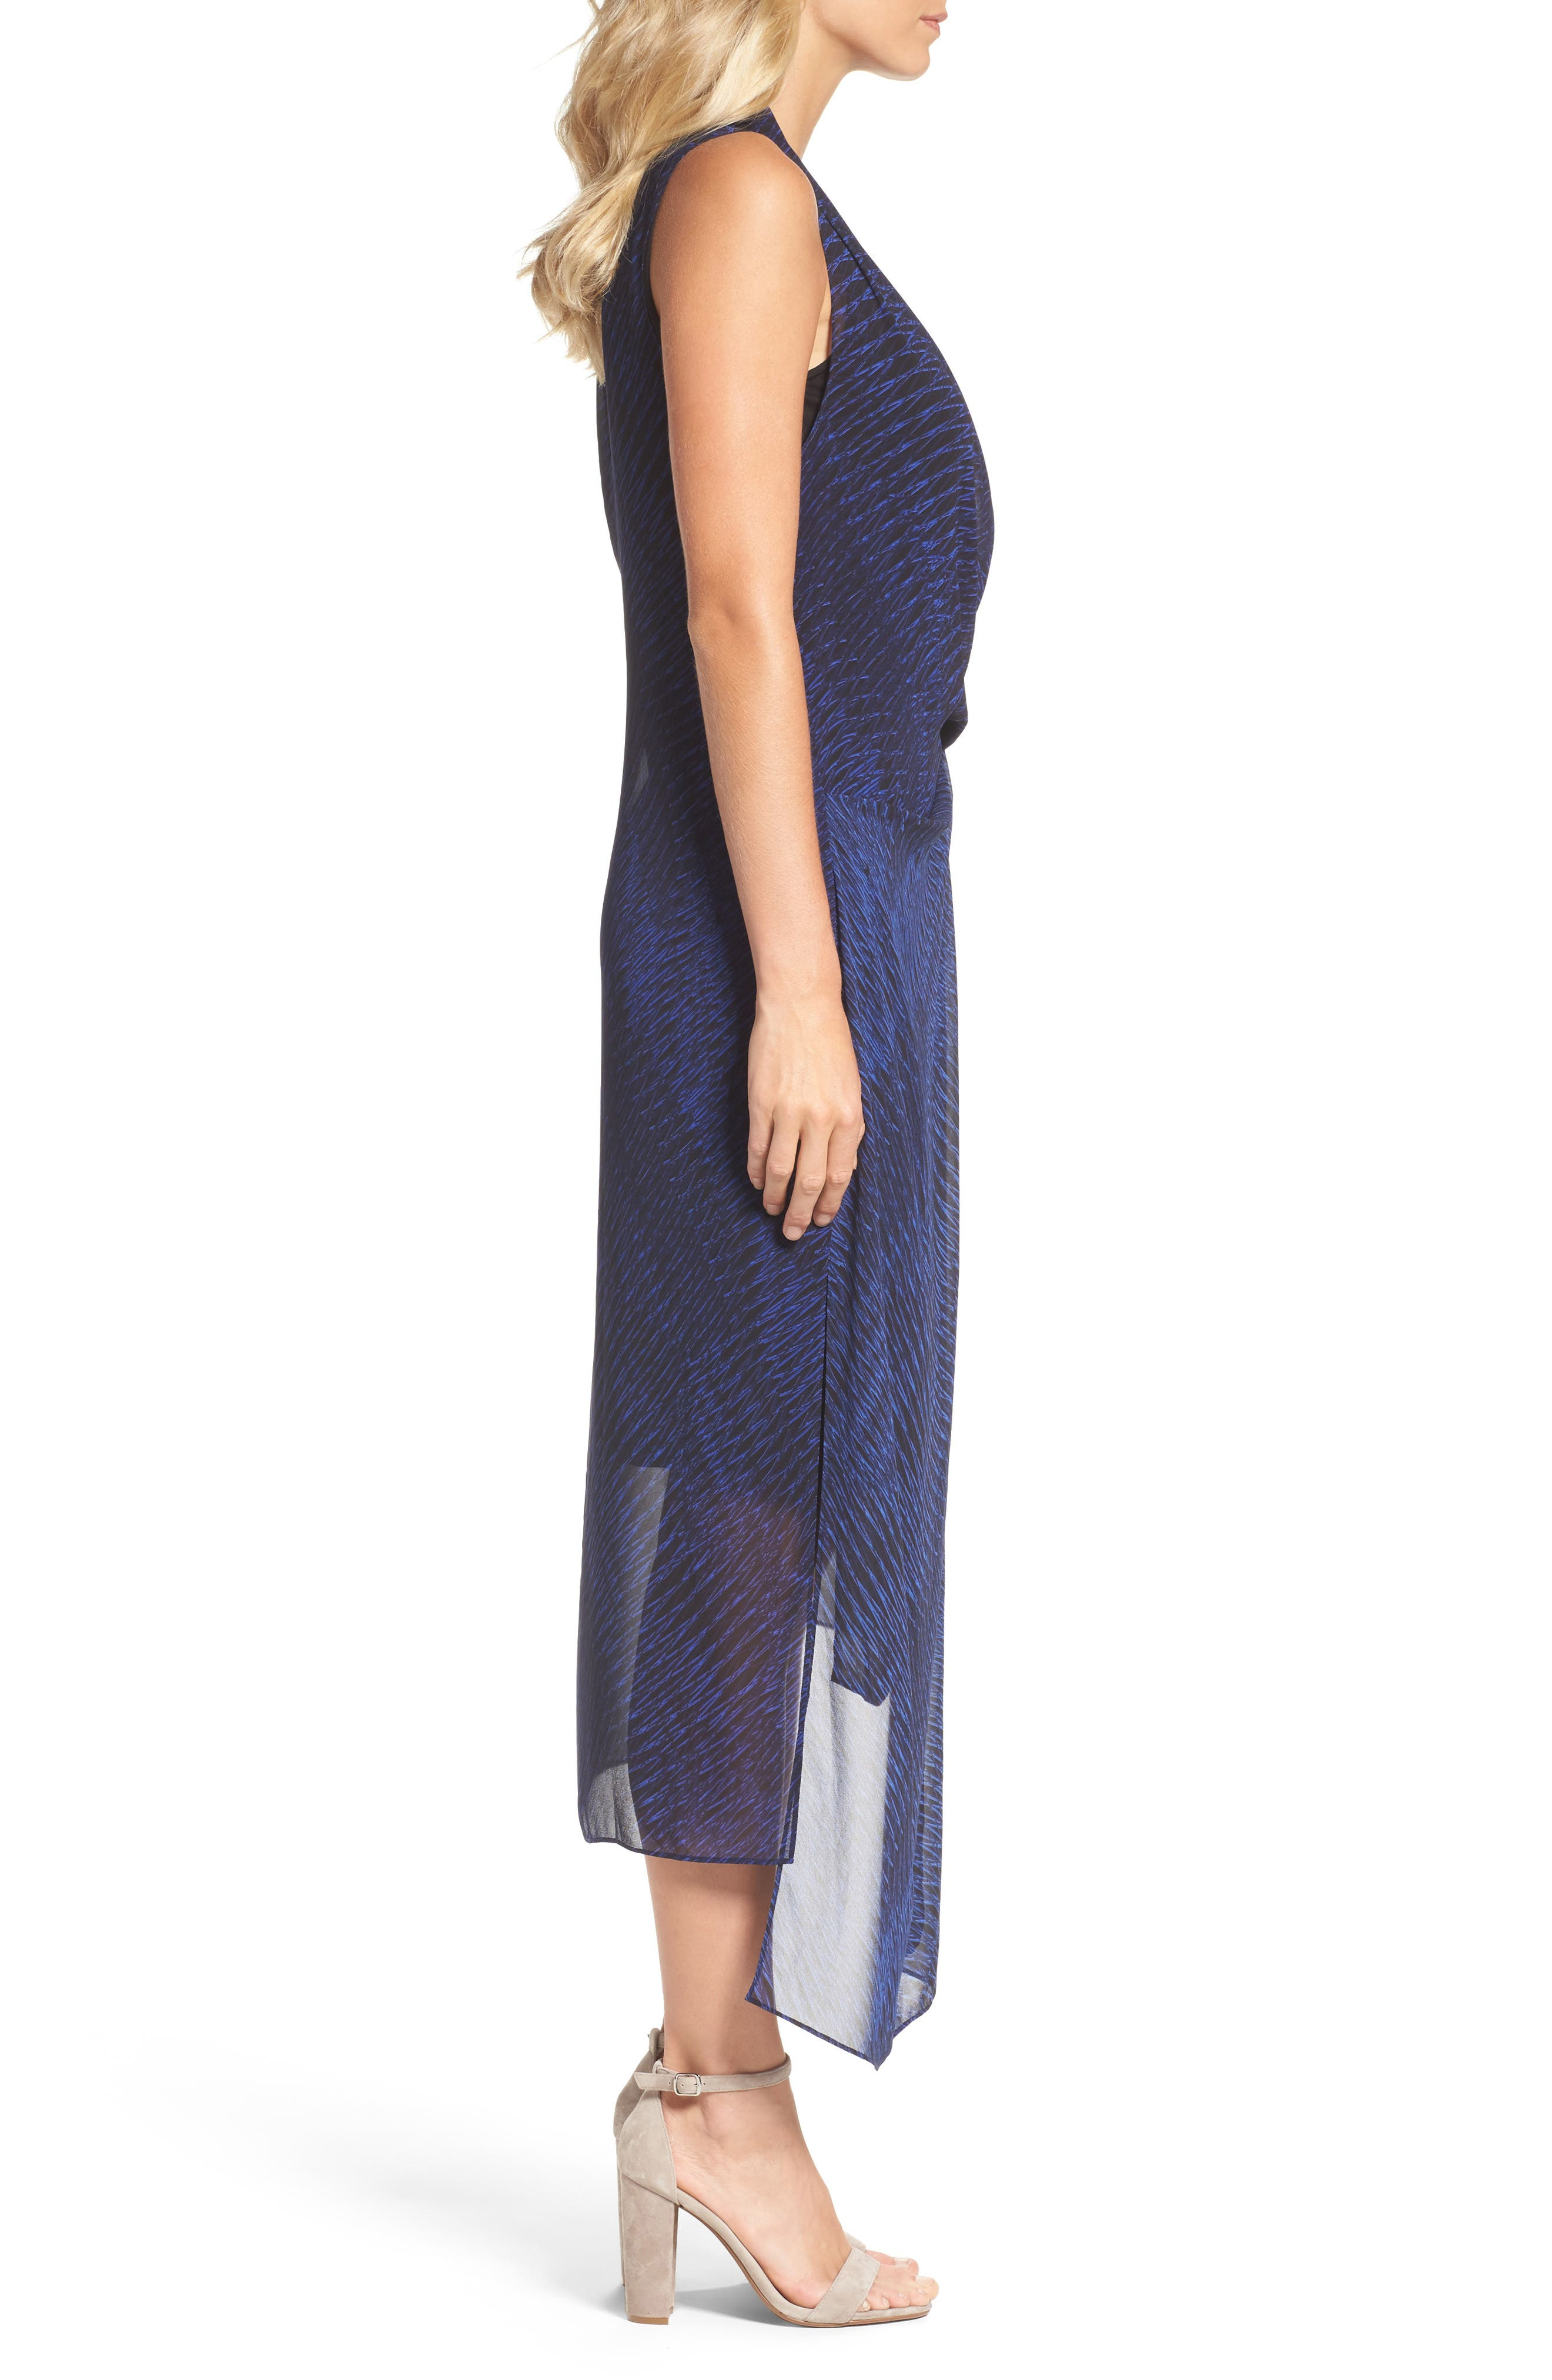 Blue Streaks Midi Dress,                             Alternate thumbnail 3, color,                             465